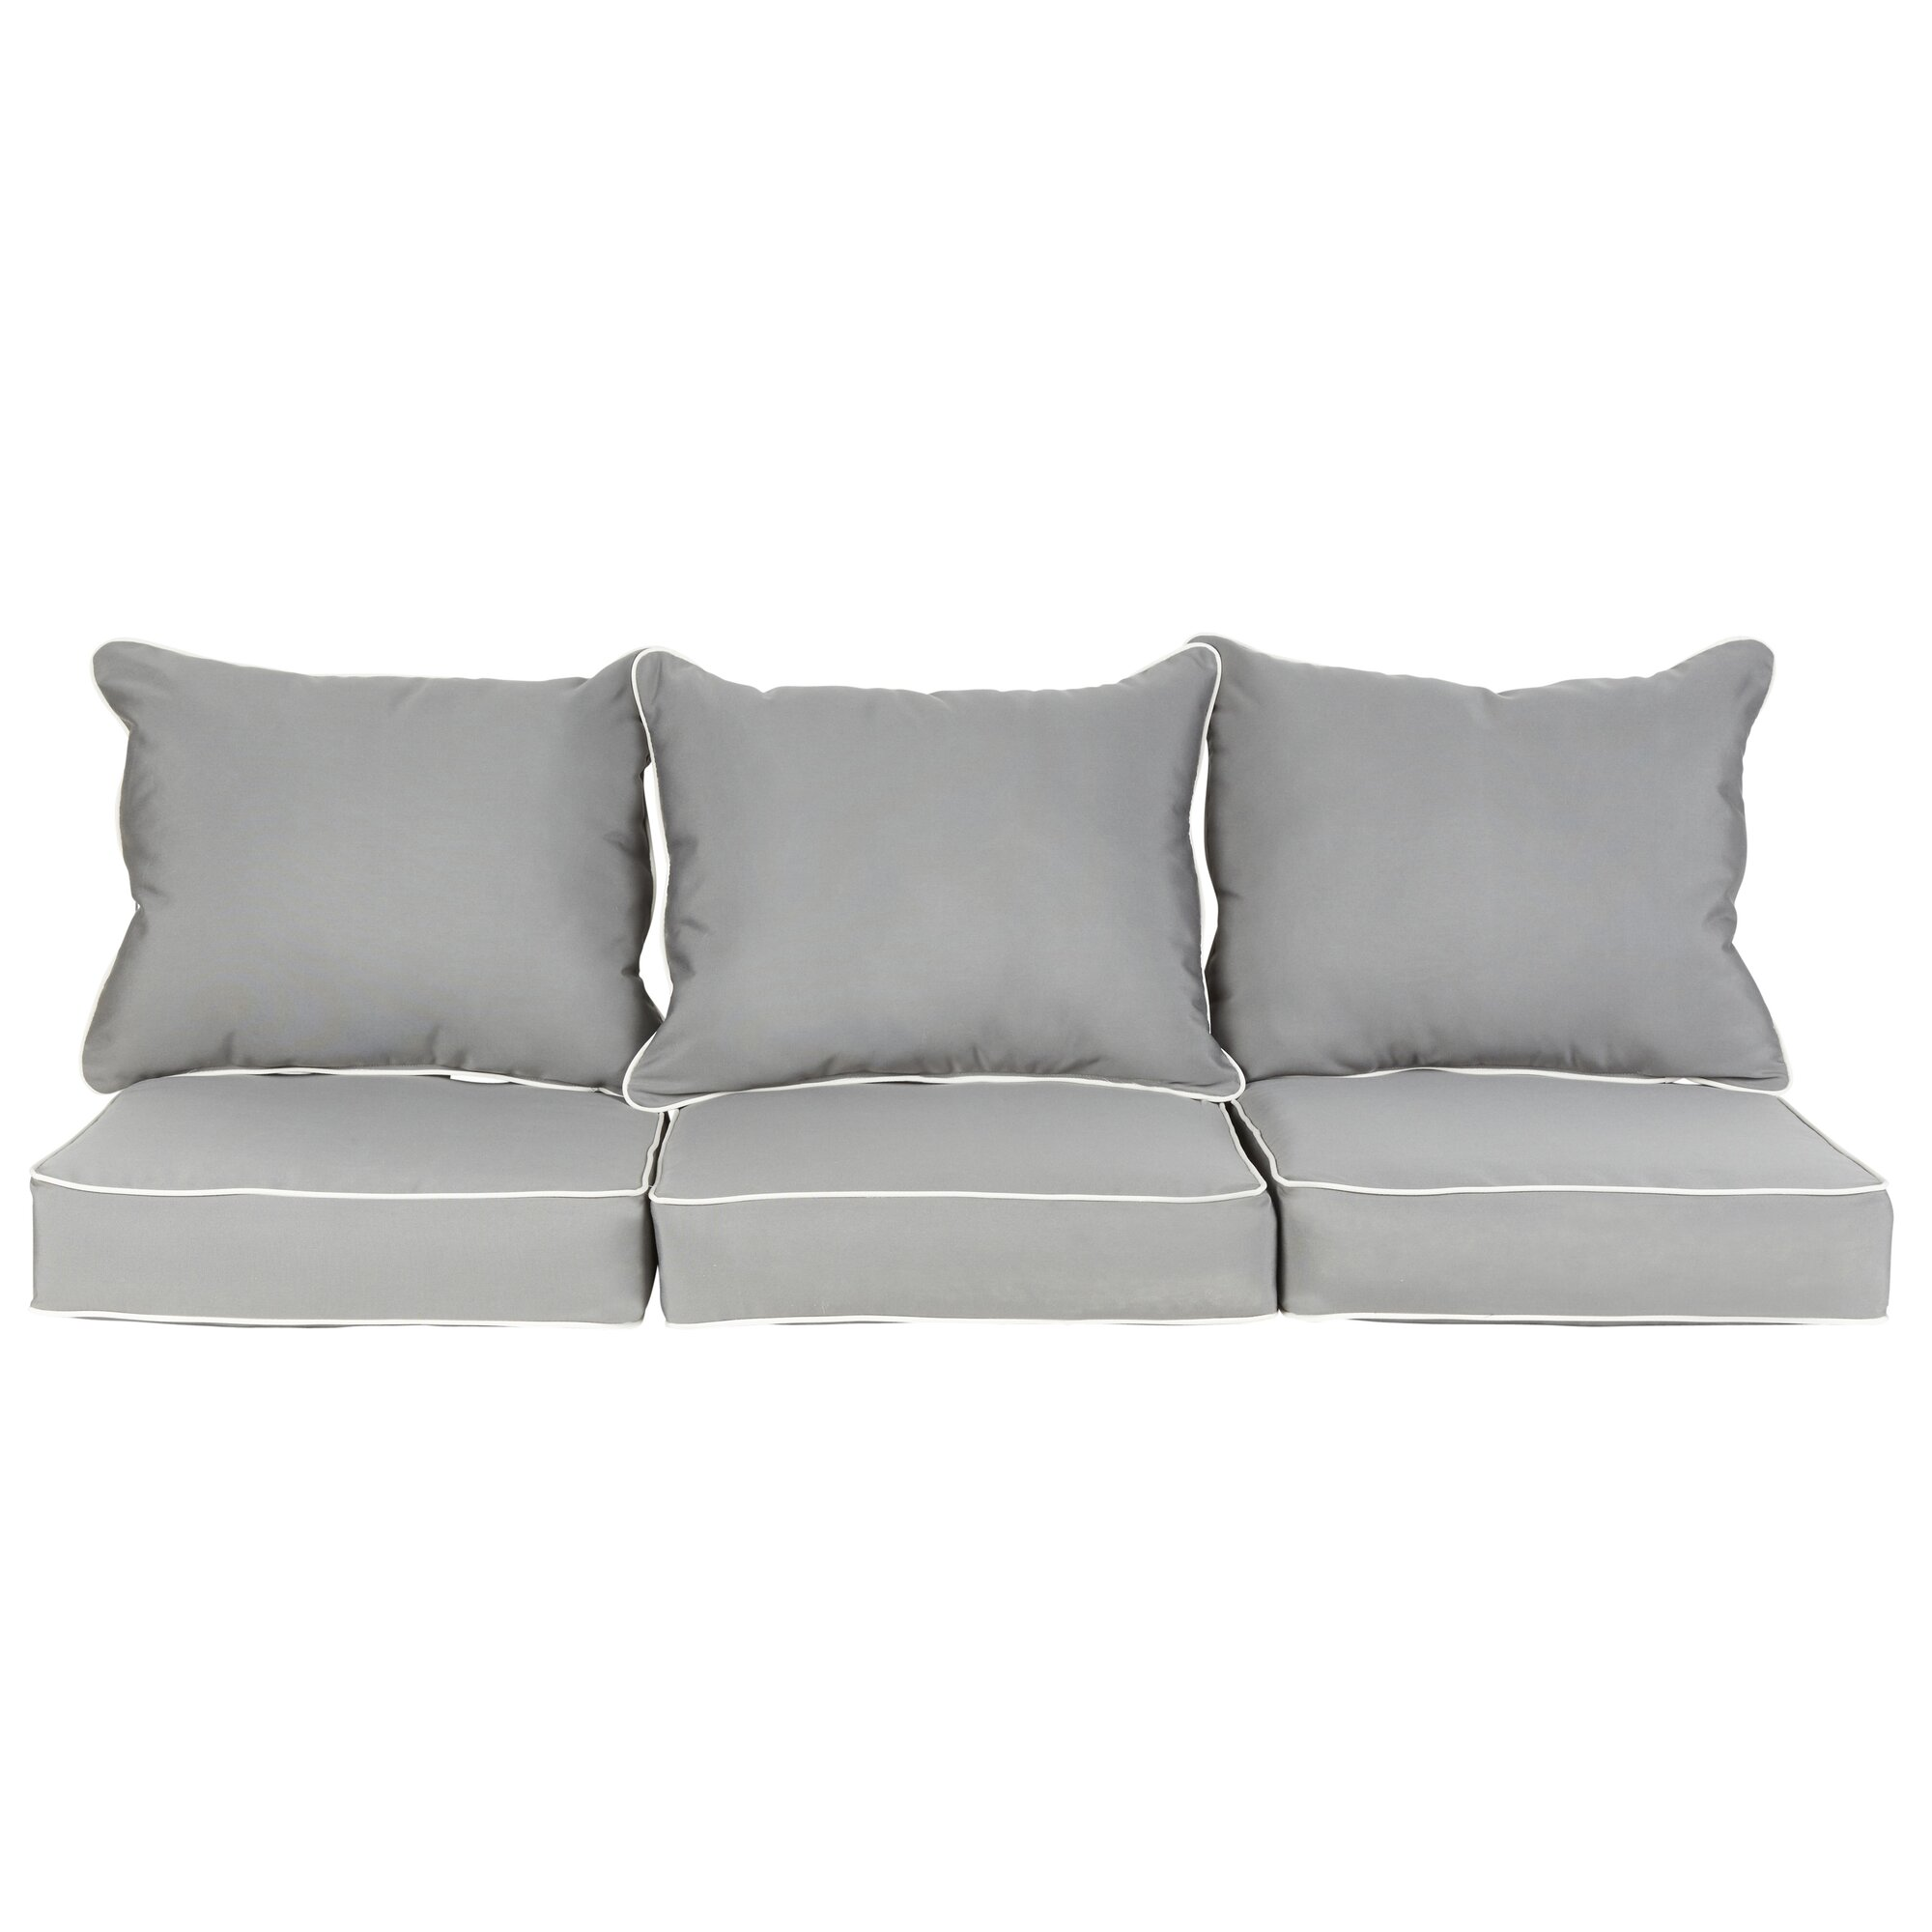 Latitude Run Michelle 6 Piece Sunbrella Loveseat Sofa Cushion Set